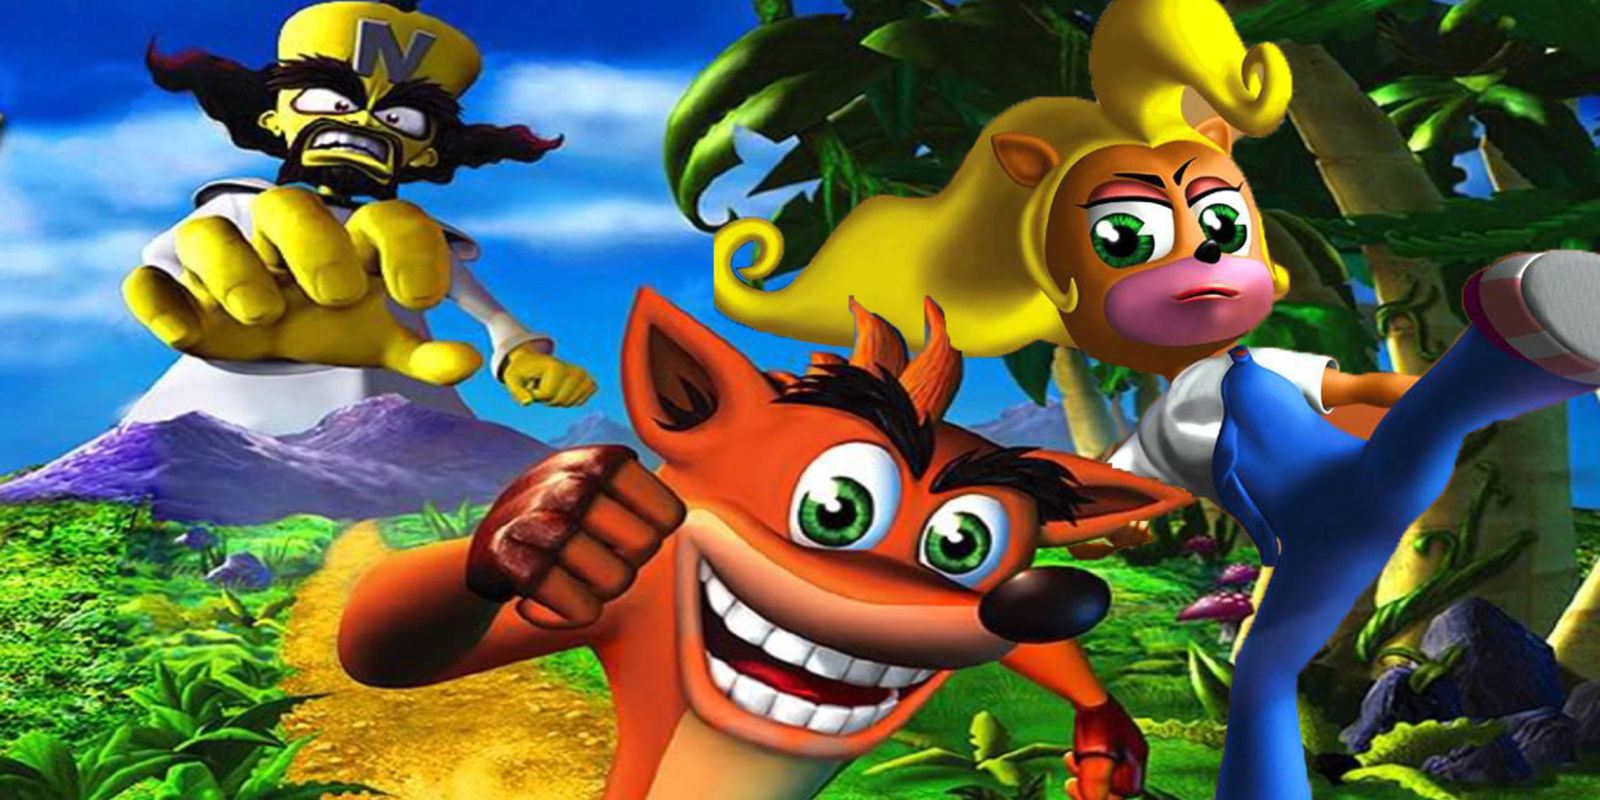 Image 1 - Crash Bandicoot Adventures - Mod DB